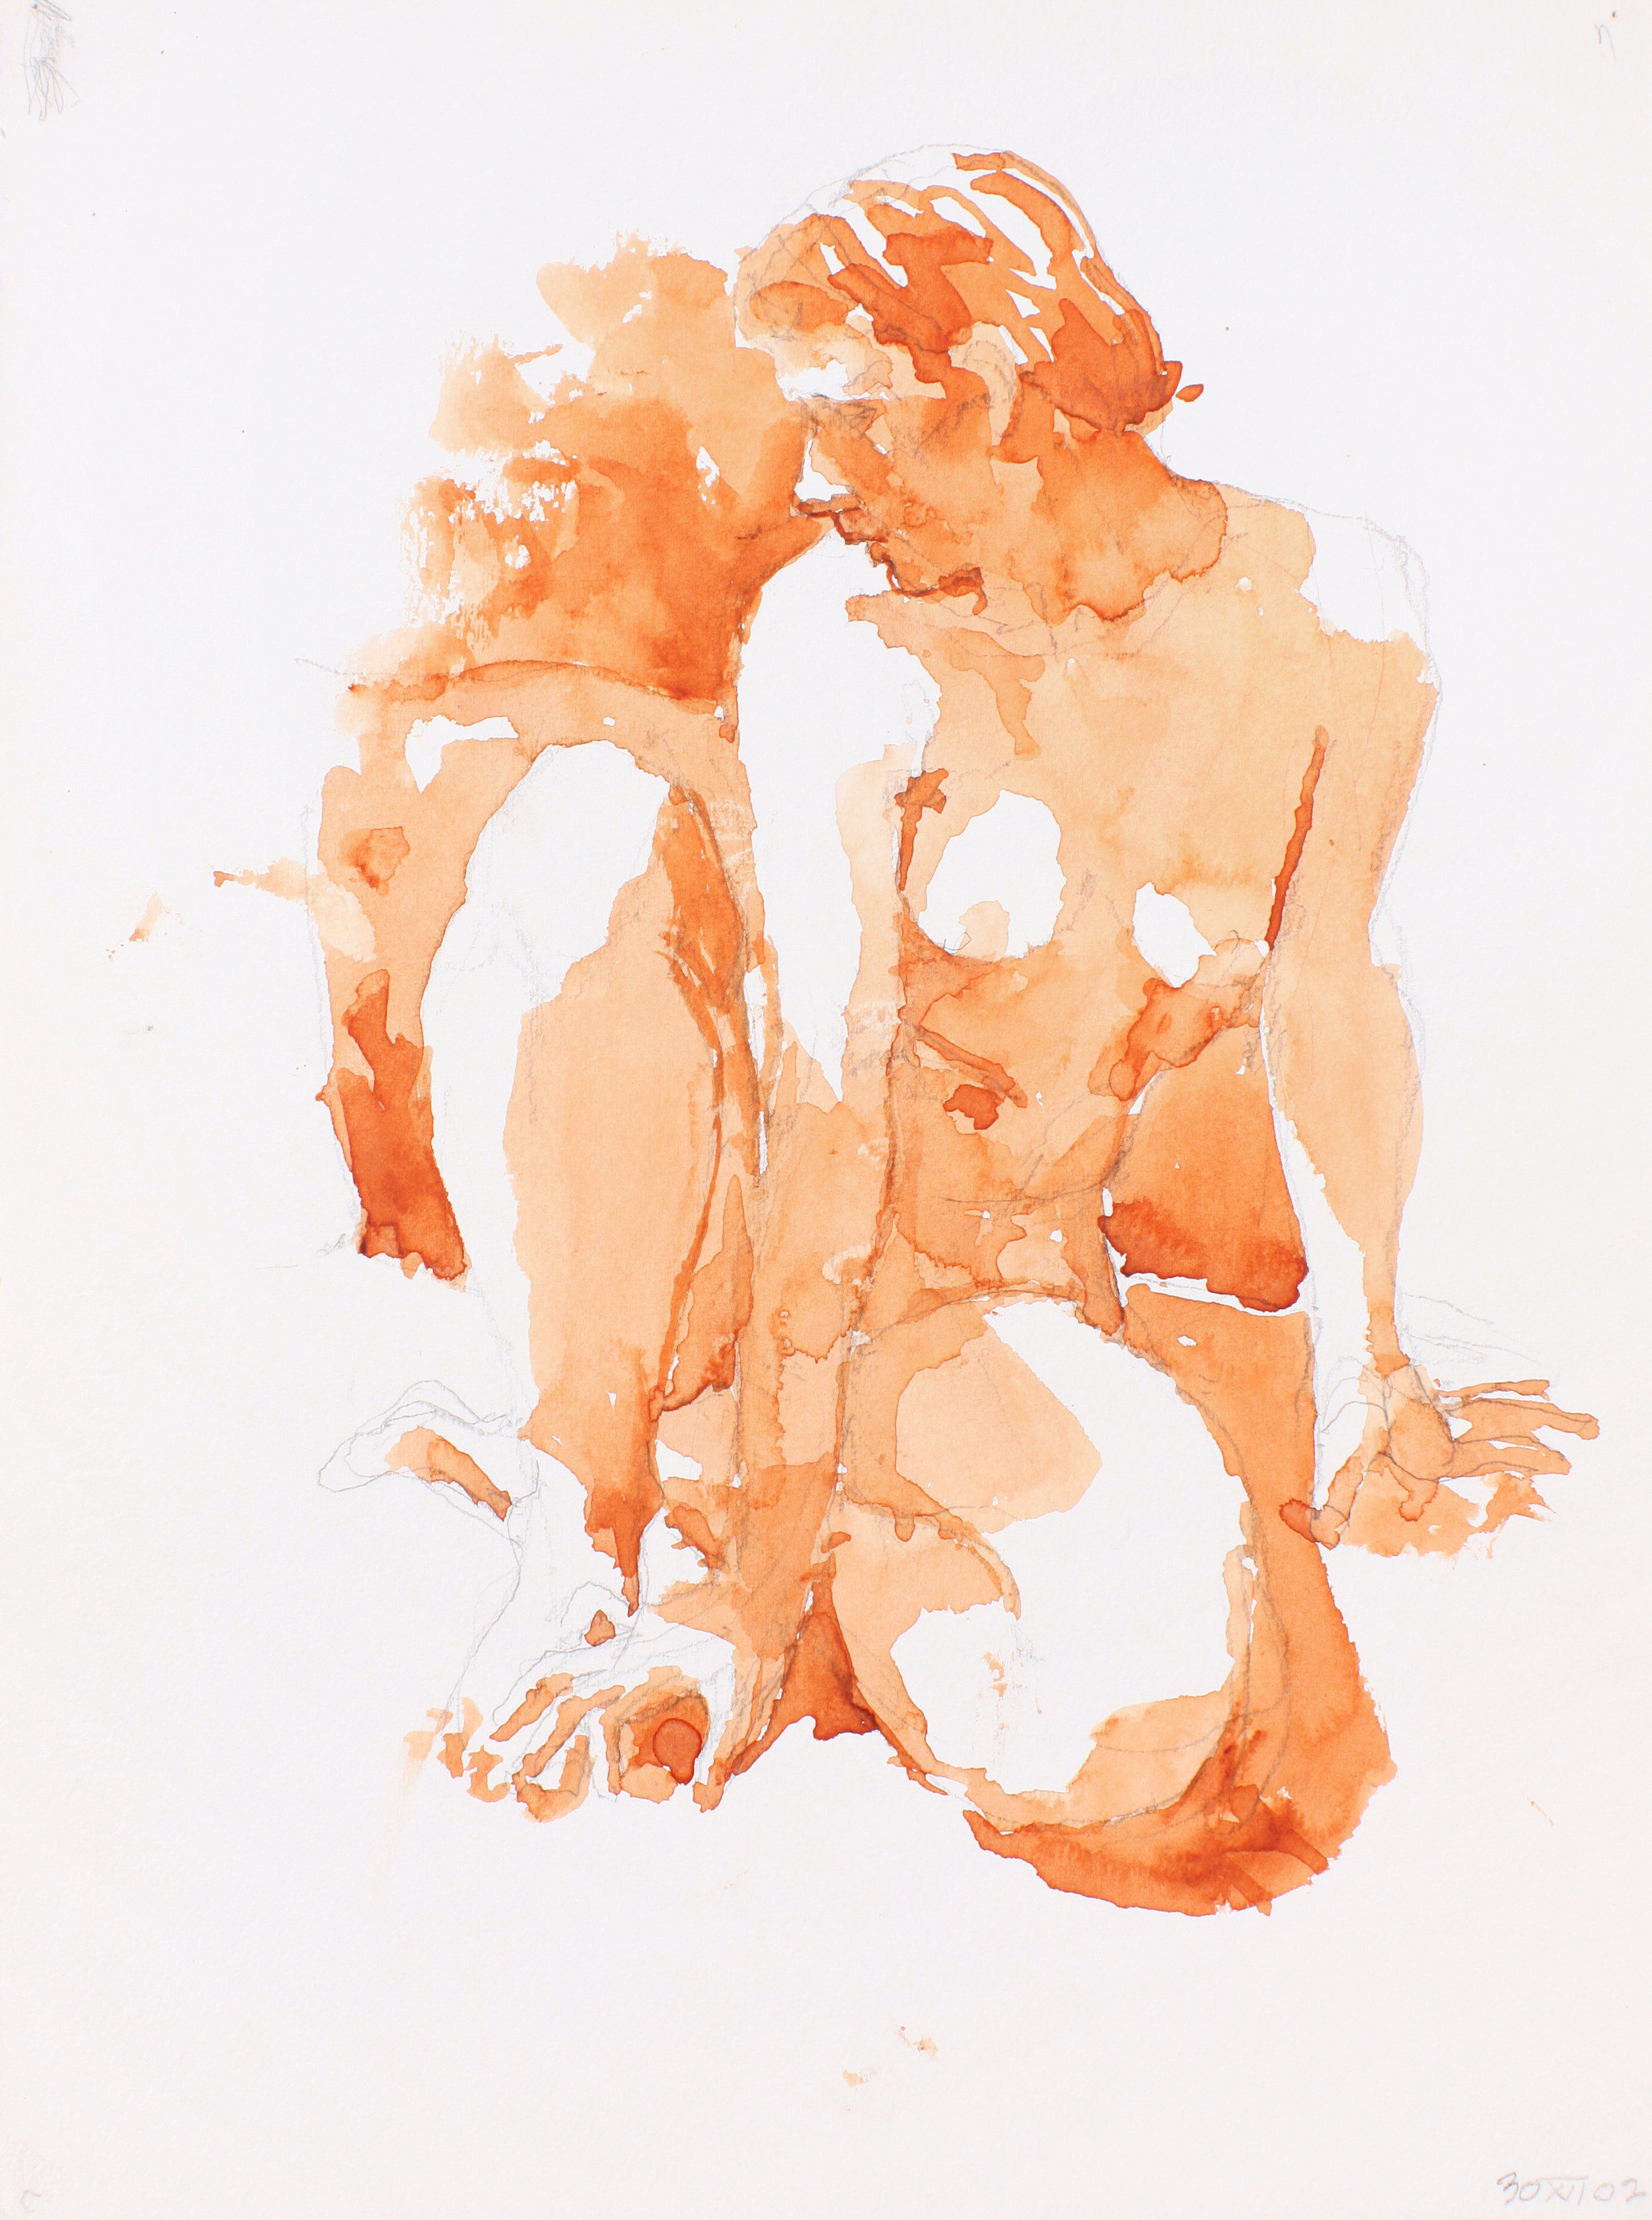 2002_Nude_Looking_Left_Seated_on_Floor_with_Bent_Legs_watercolour_and_pencil_on_paper_15x11in_WPF208.jpg